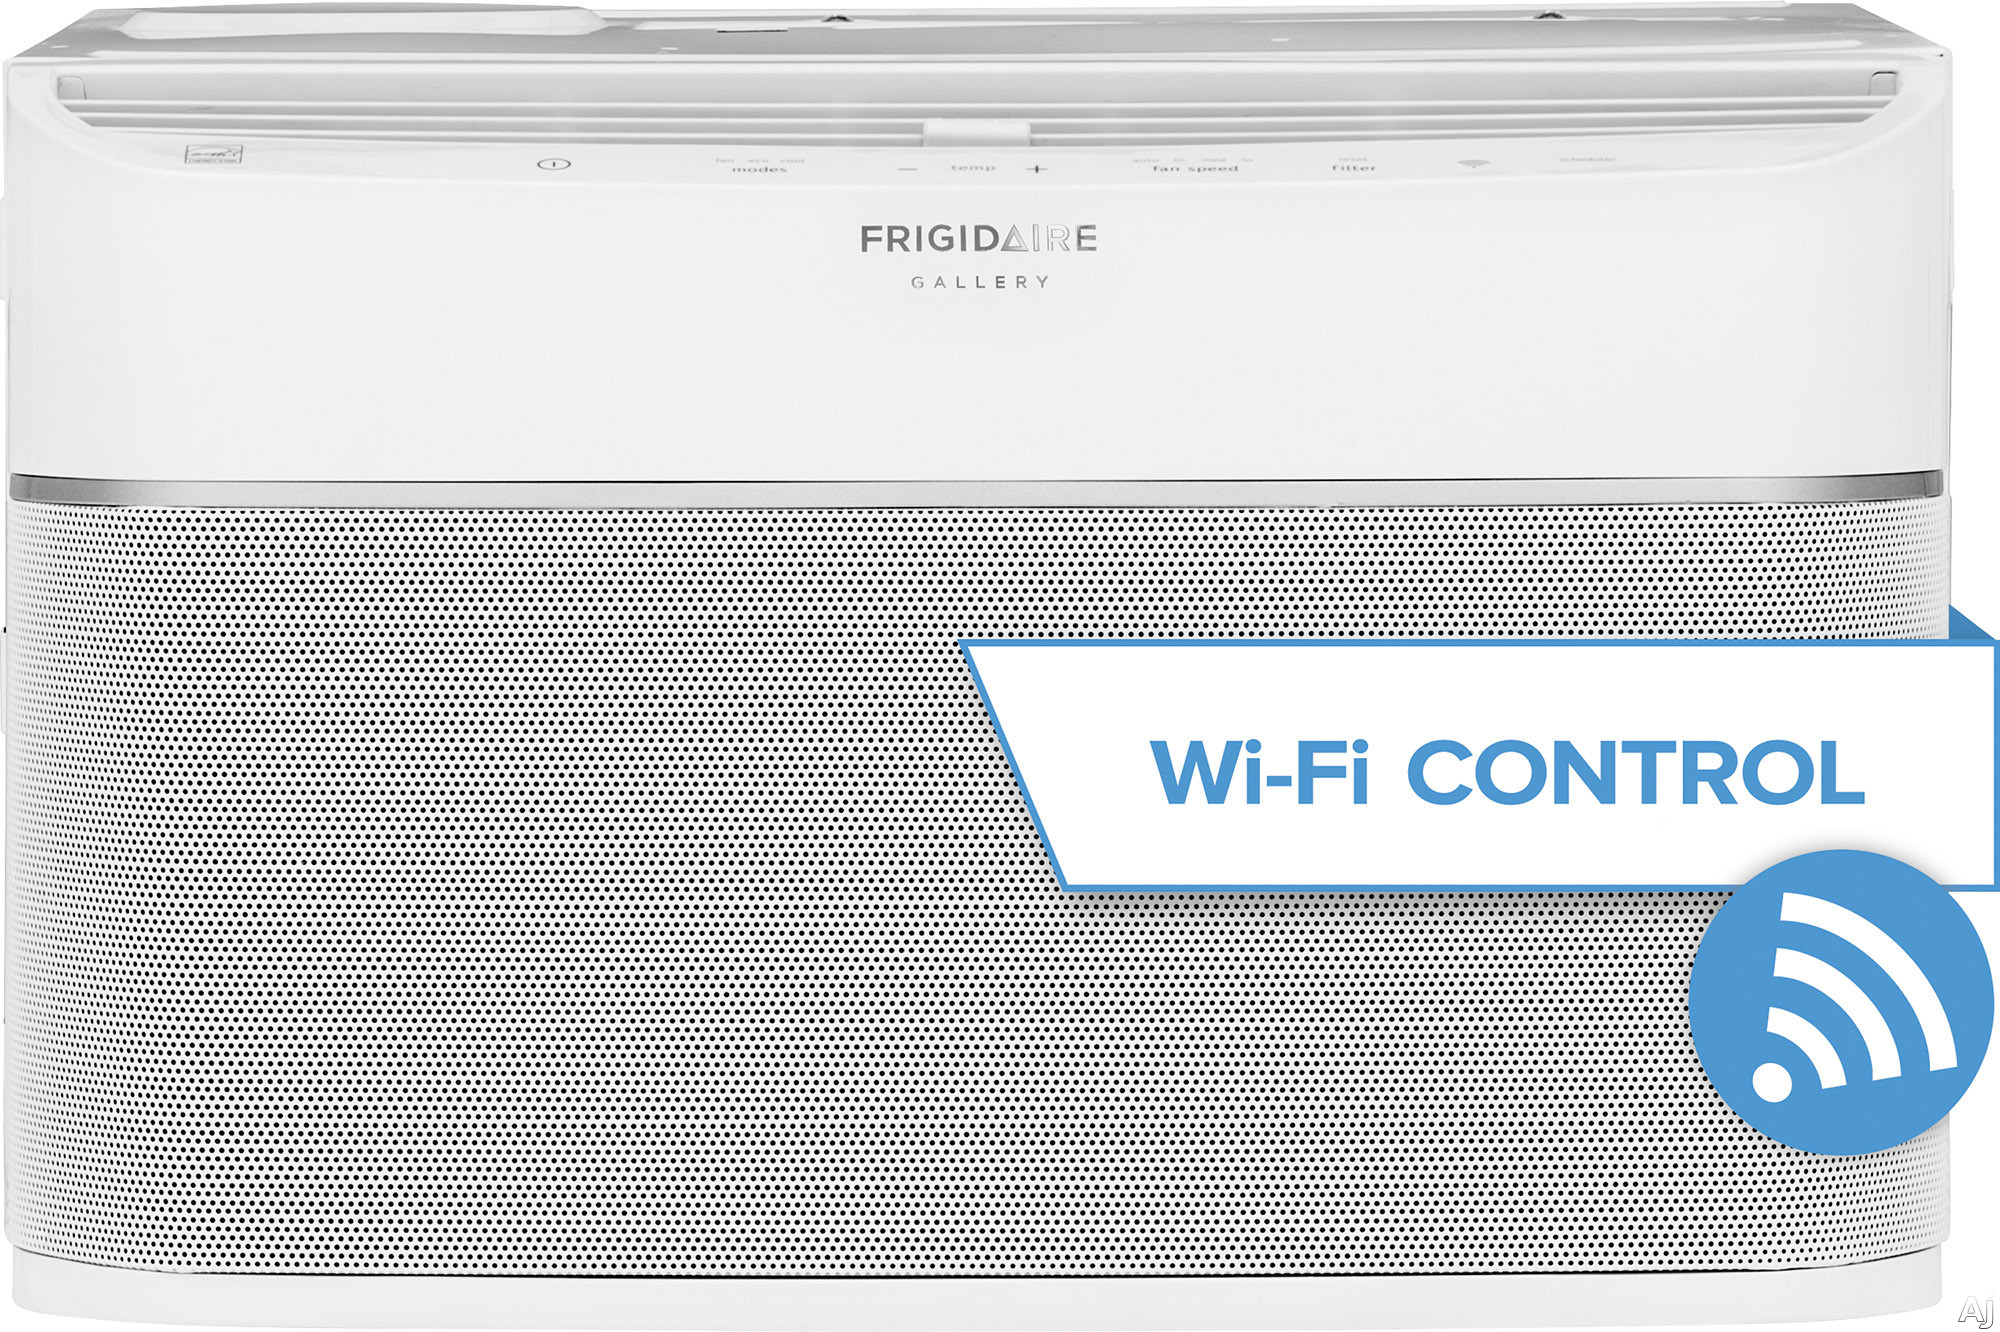 Frigidaire White Gallery FGRC0844S1 8,000 BTU Cool Connect Smart Window Air Conditioner with Wi-Fi Control 17920265